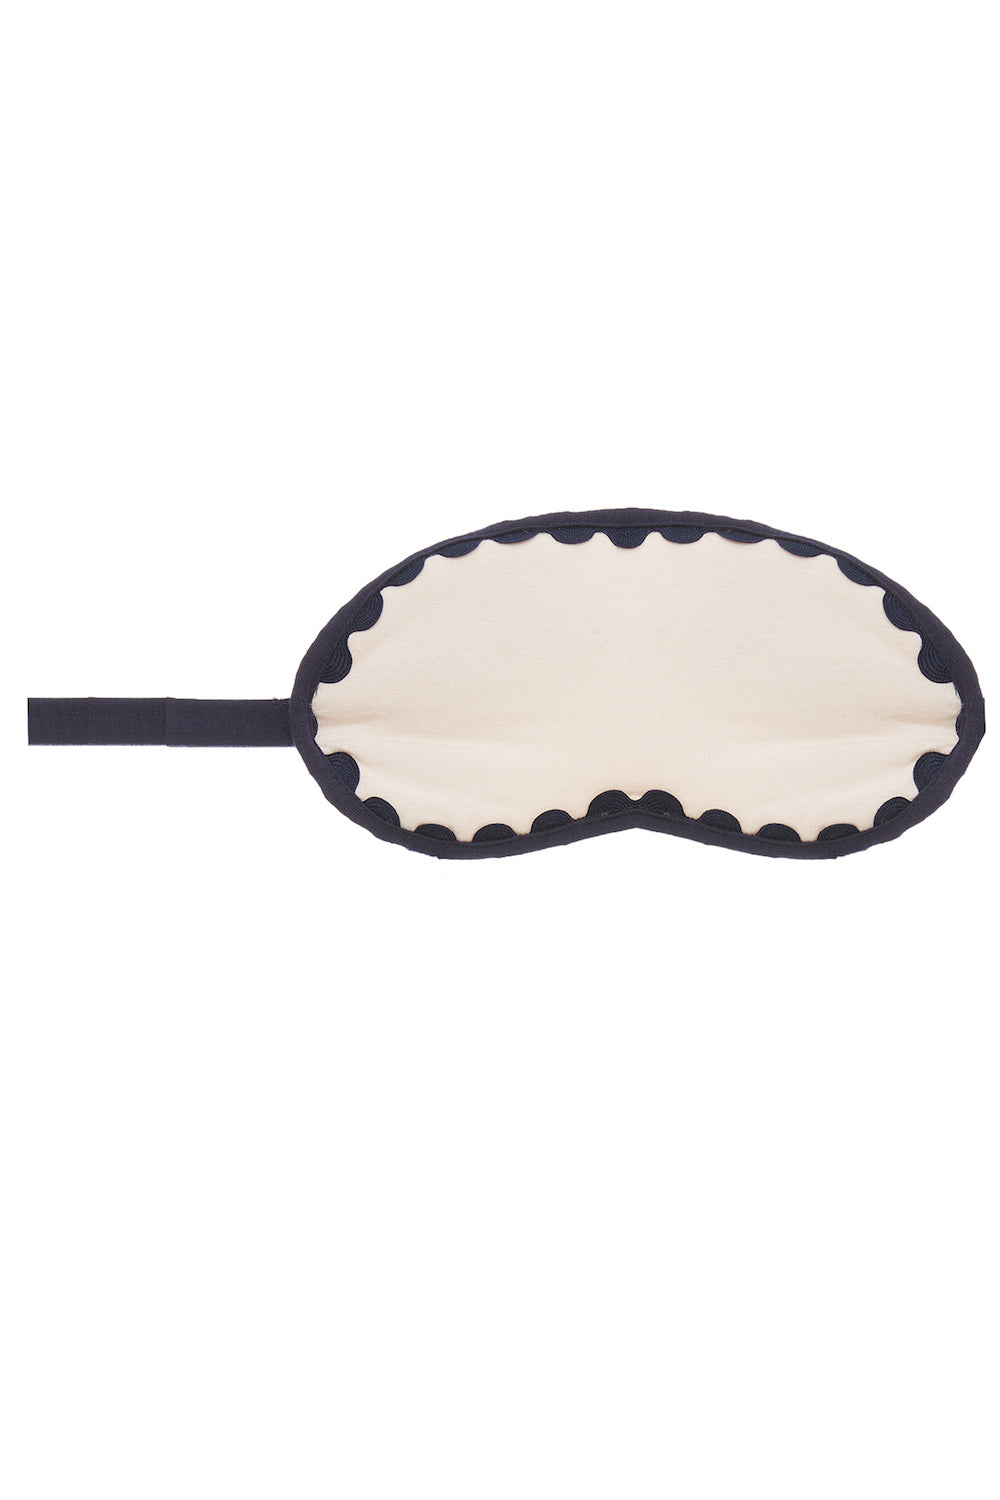 Eberjey Ric Rac Eye Mask- Shell/Peacoat